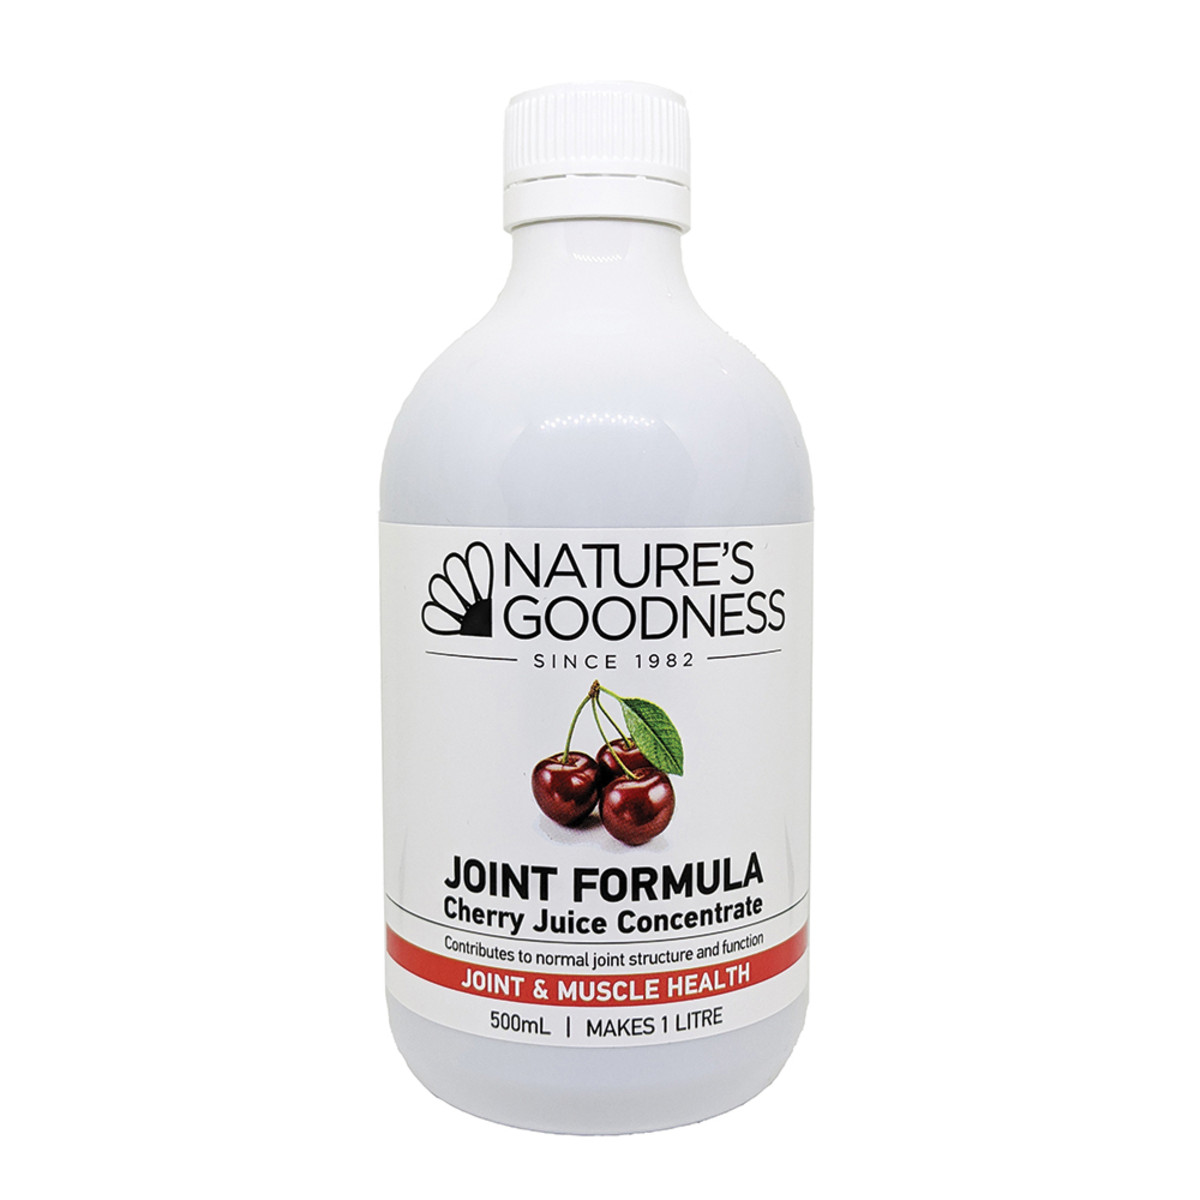 NATURE'S GOODNESS CHERRY JUICE CONCENTRATE 500ML